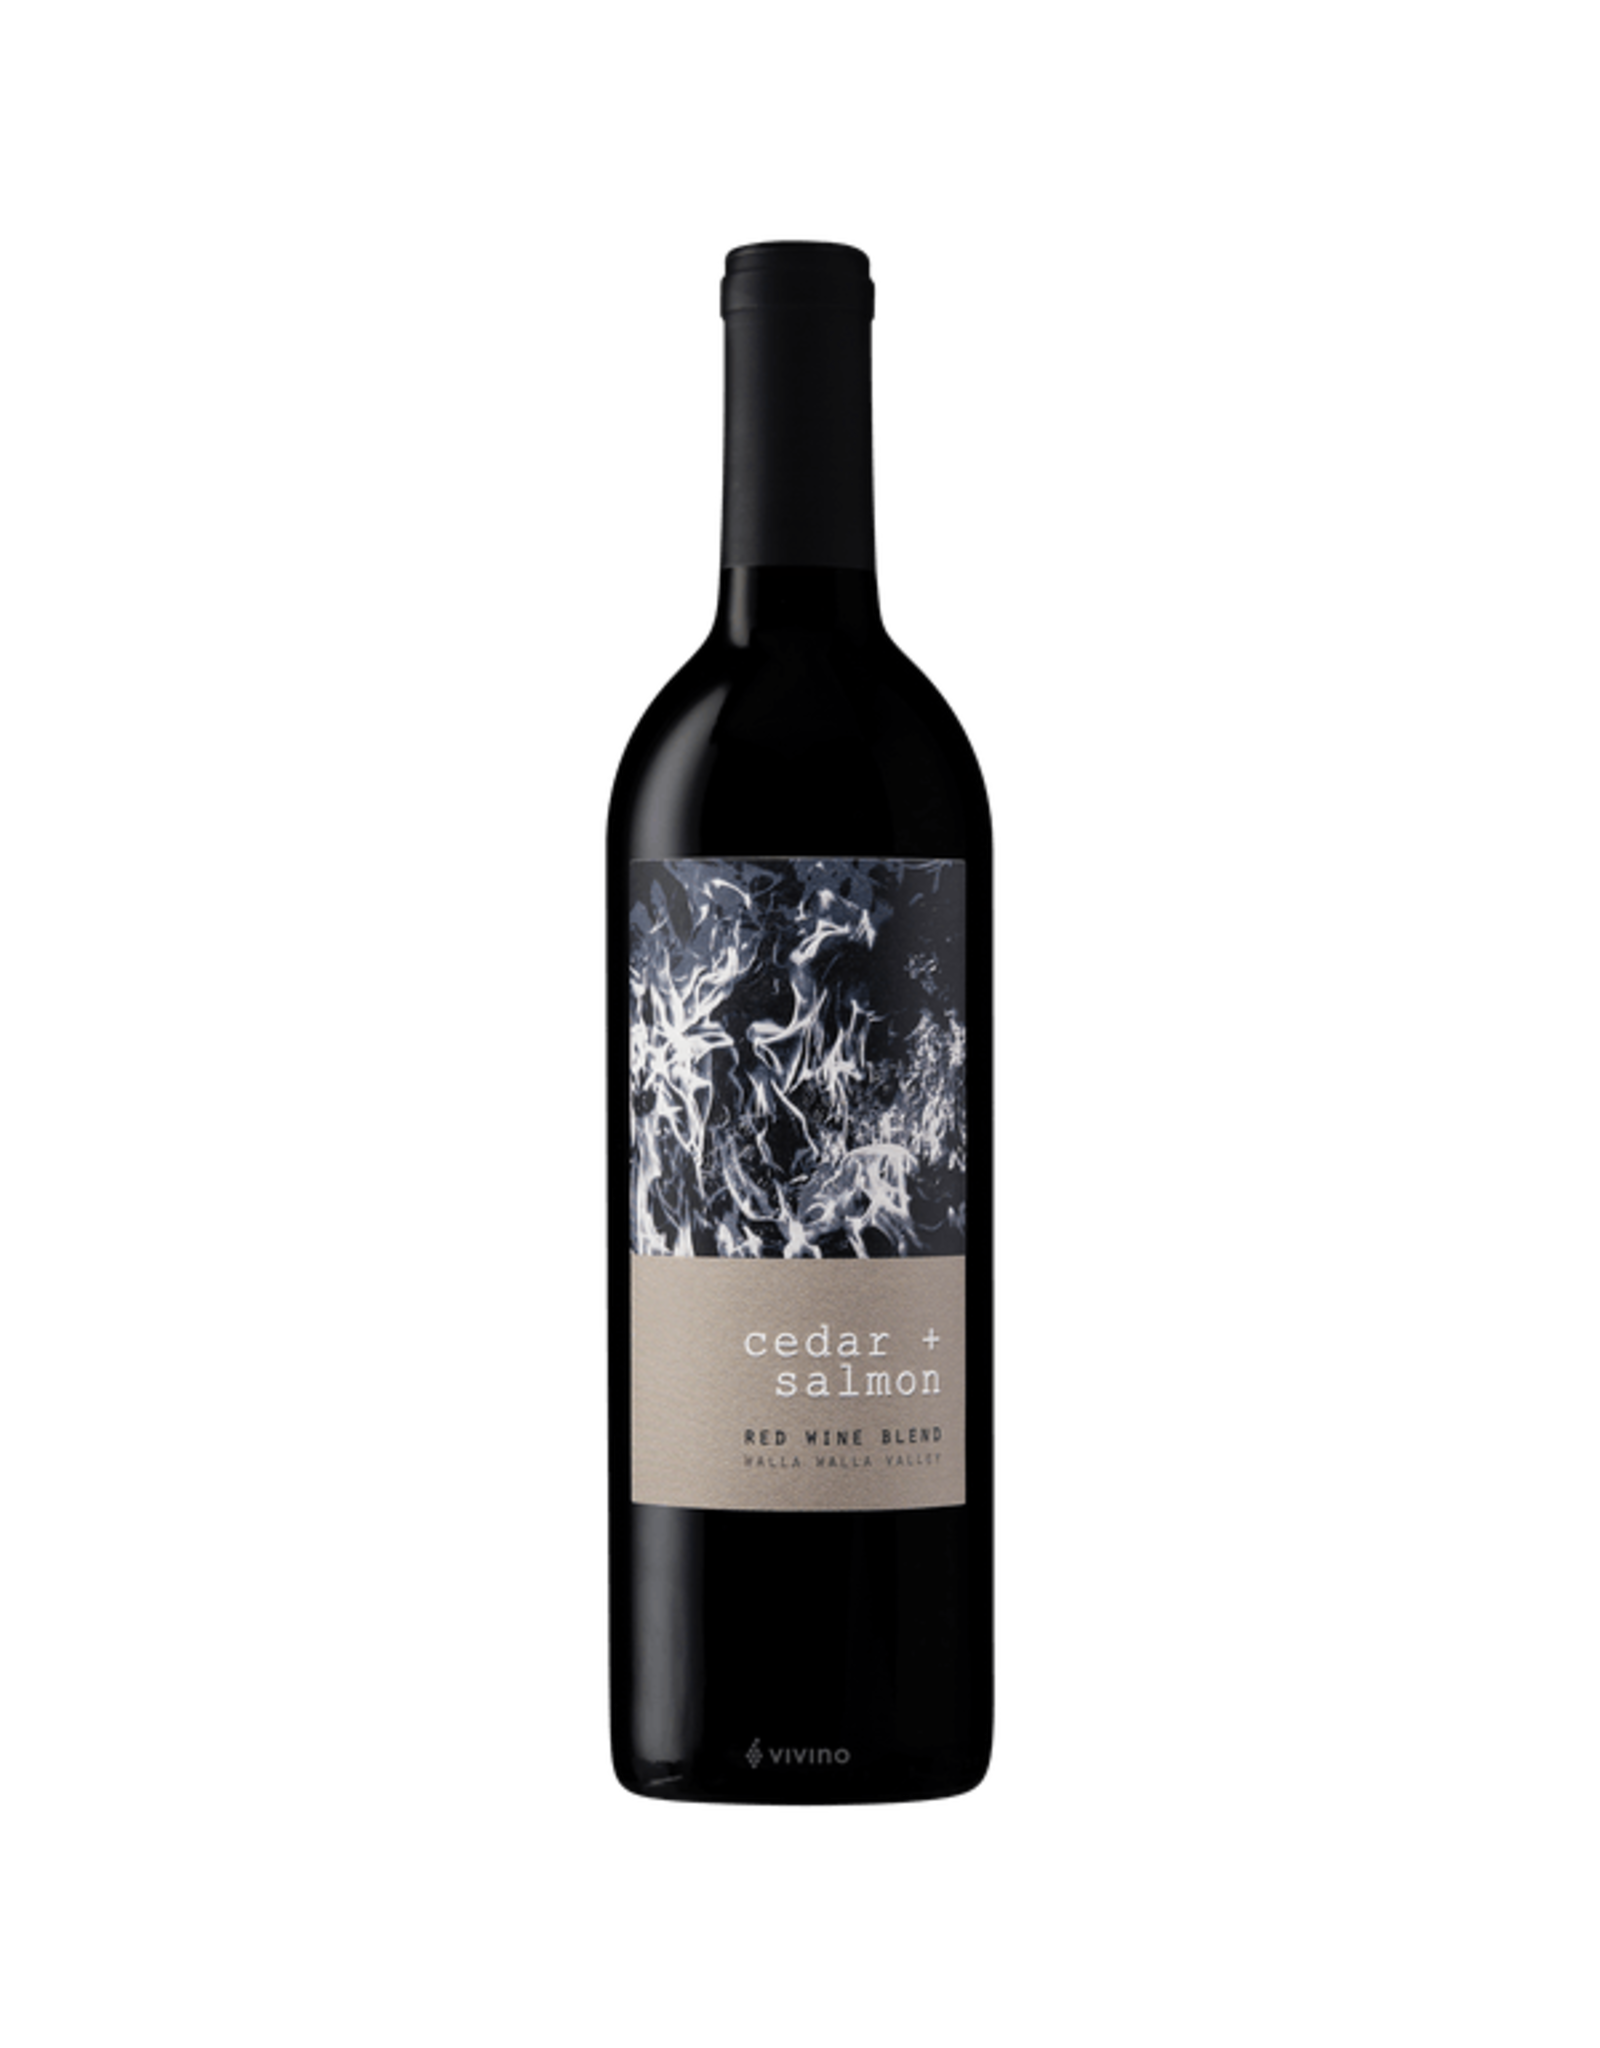 Cedar and Salmon Red Blend 2017